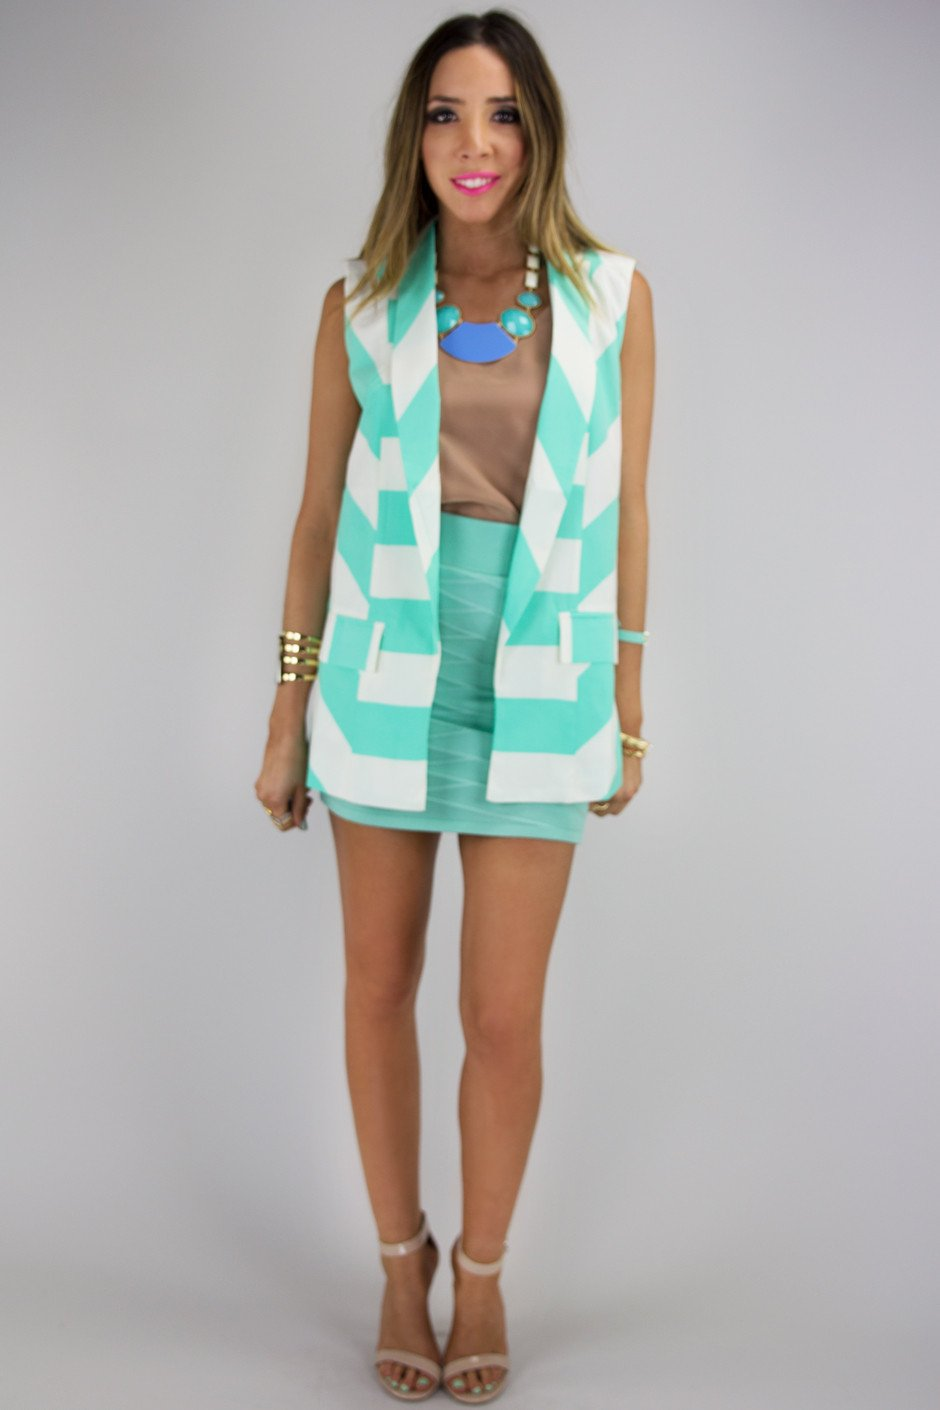 ALLIE CHEVRON PATTERN VEST - Haute & Rebellious